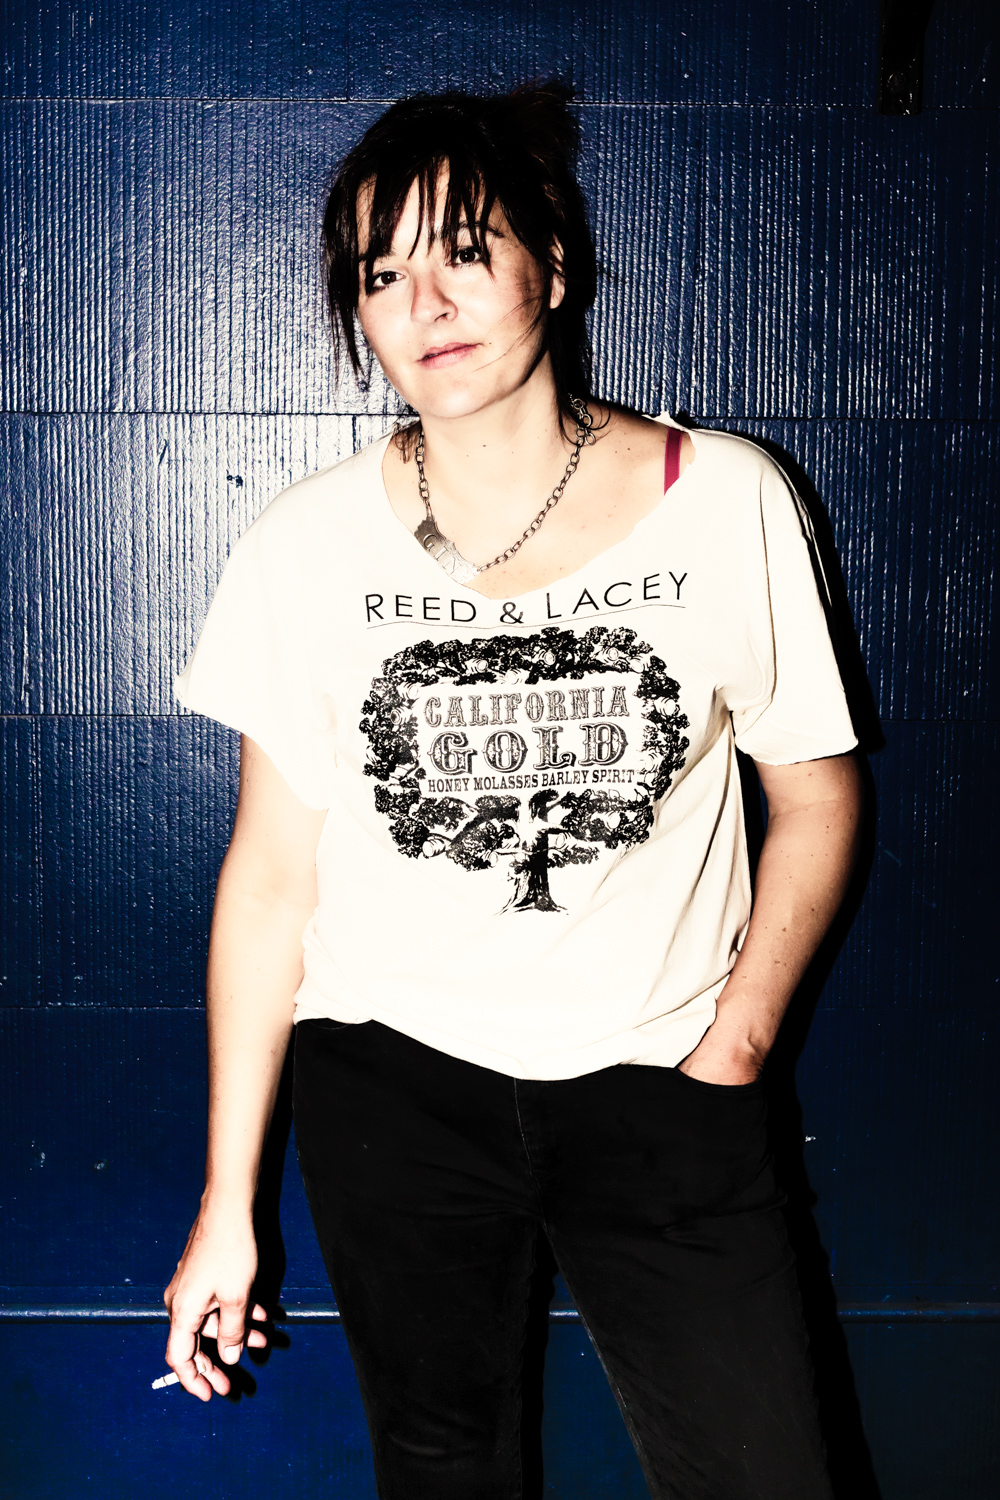 reed_lacey_cali_gold-44.jpg